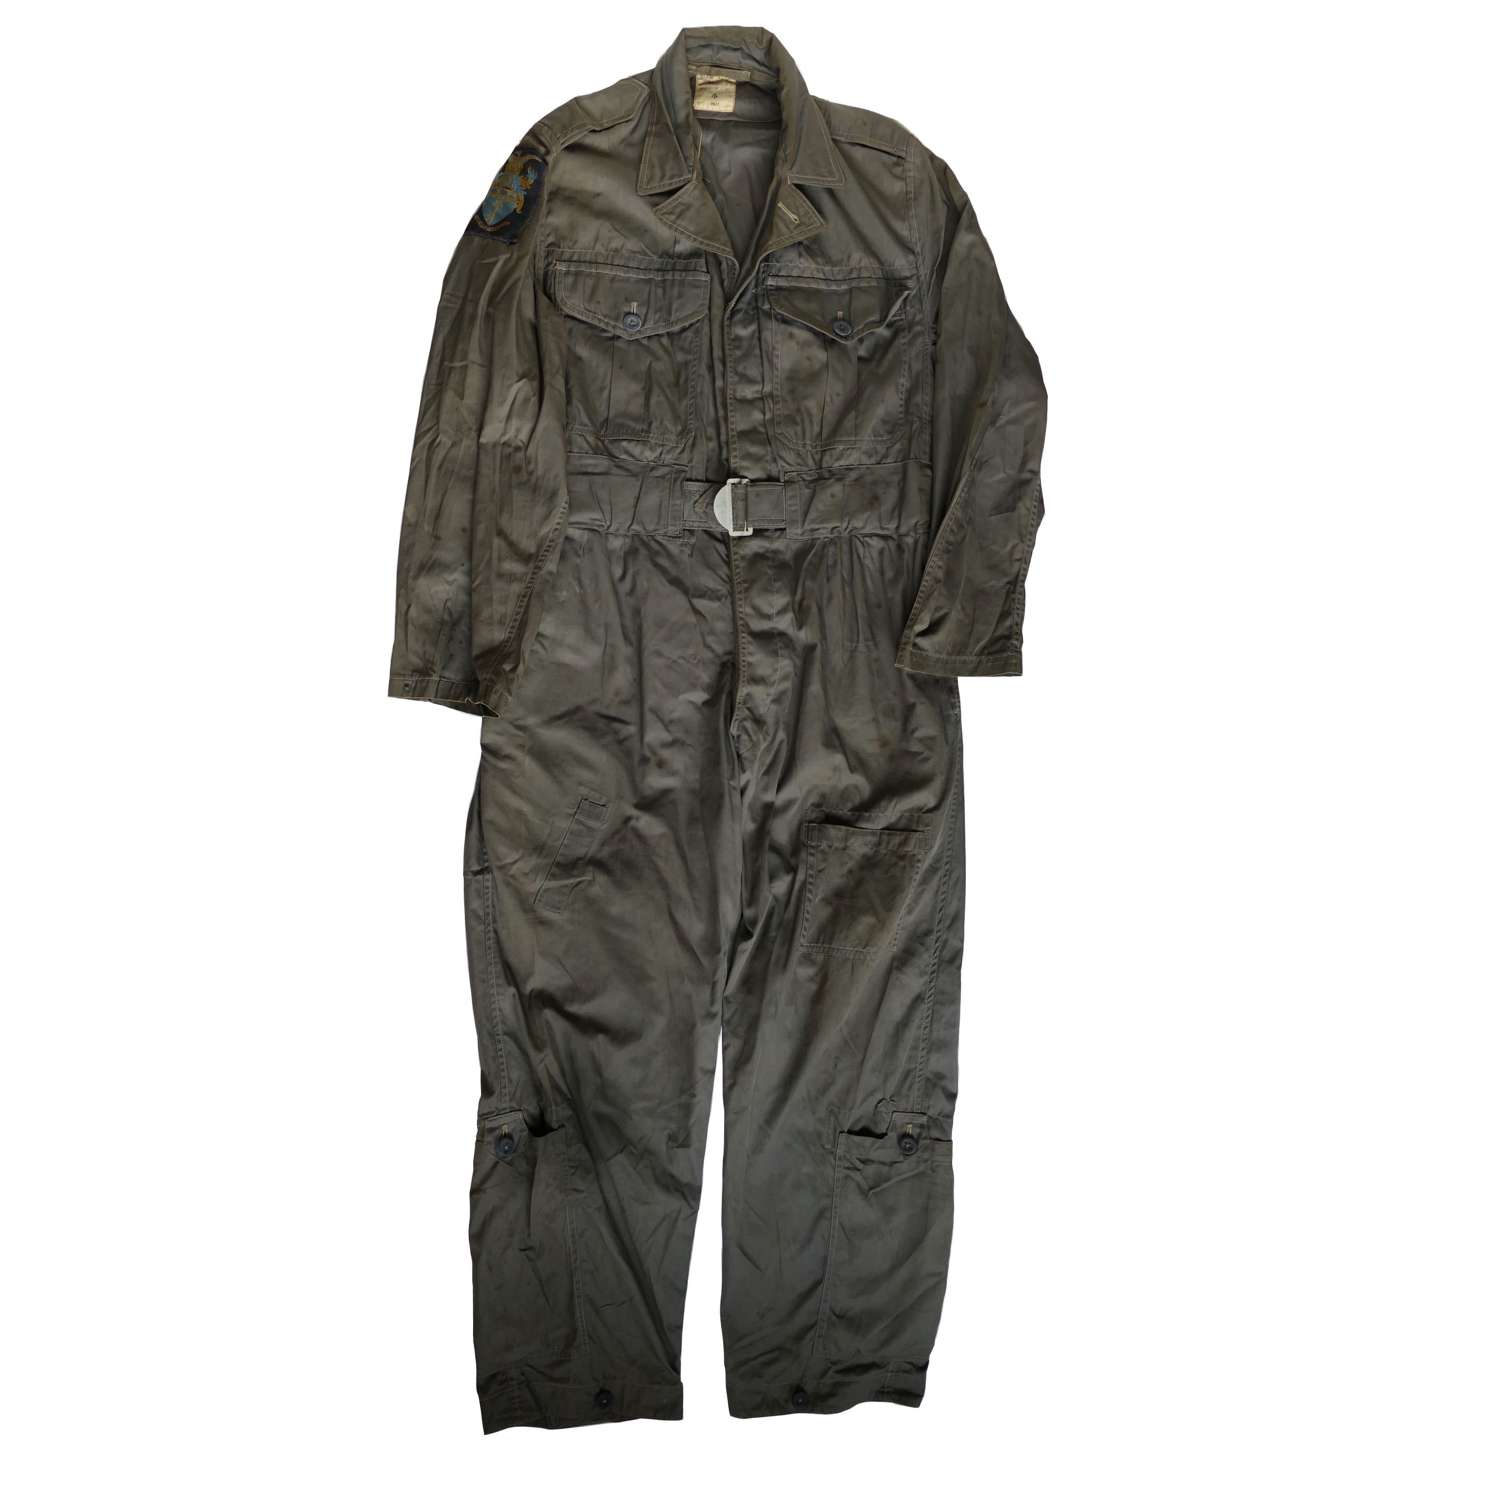 RAF 1951 pattern ventile flying suit